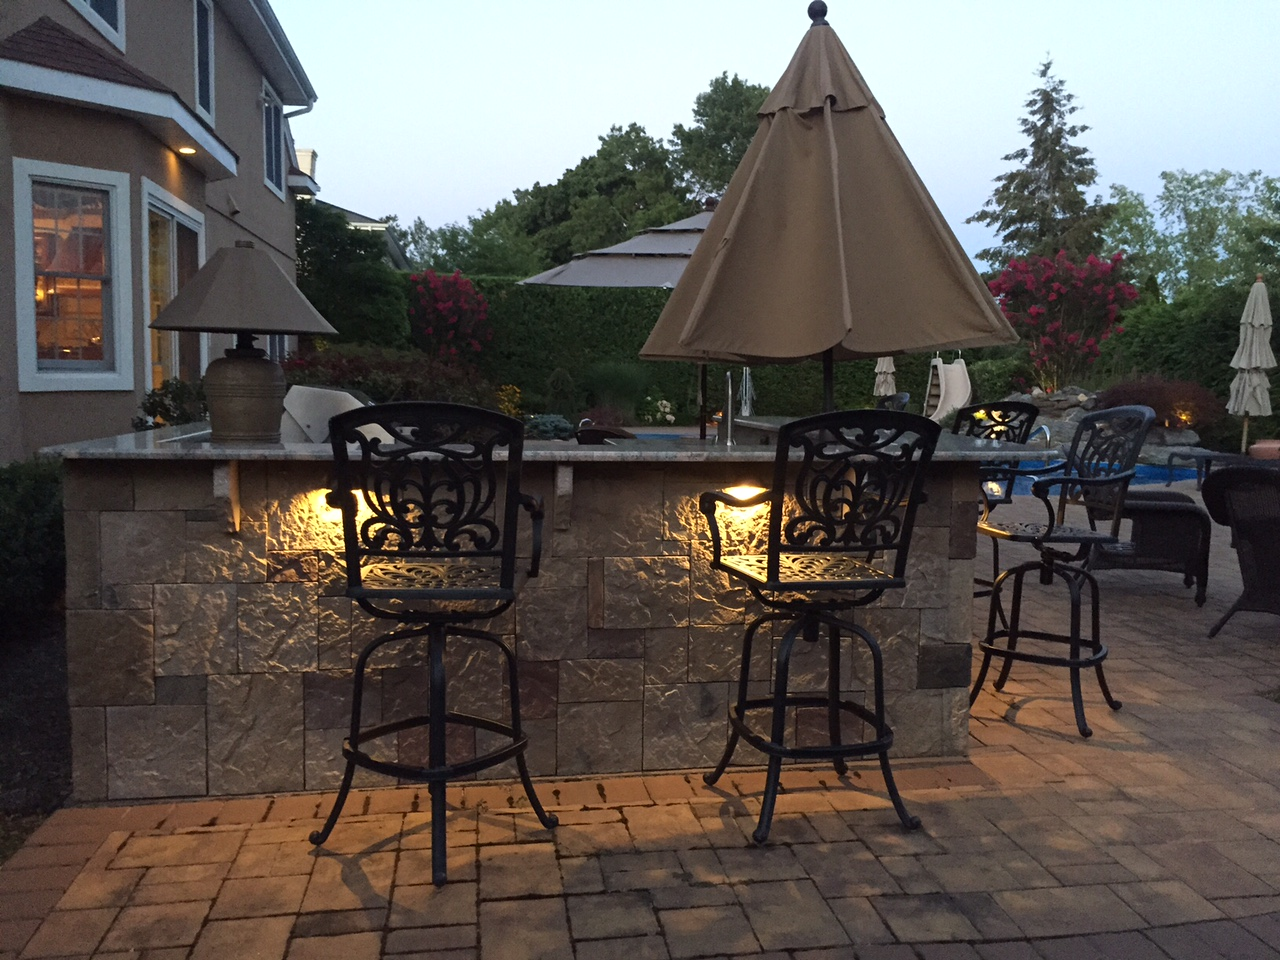 Outdoor Kitchen Lights Blog outdoor lighting perspectives no matter how late you like to cook and eat louisville outdoor lighting will ensure your backyard barbecue goes off without a hitch workwithnaturefo